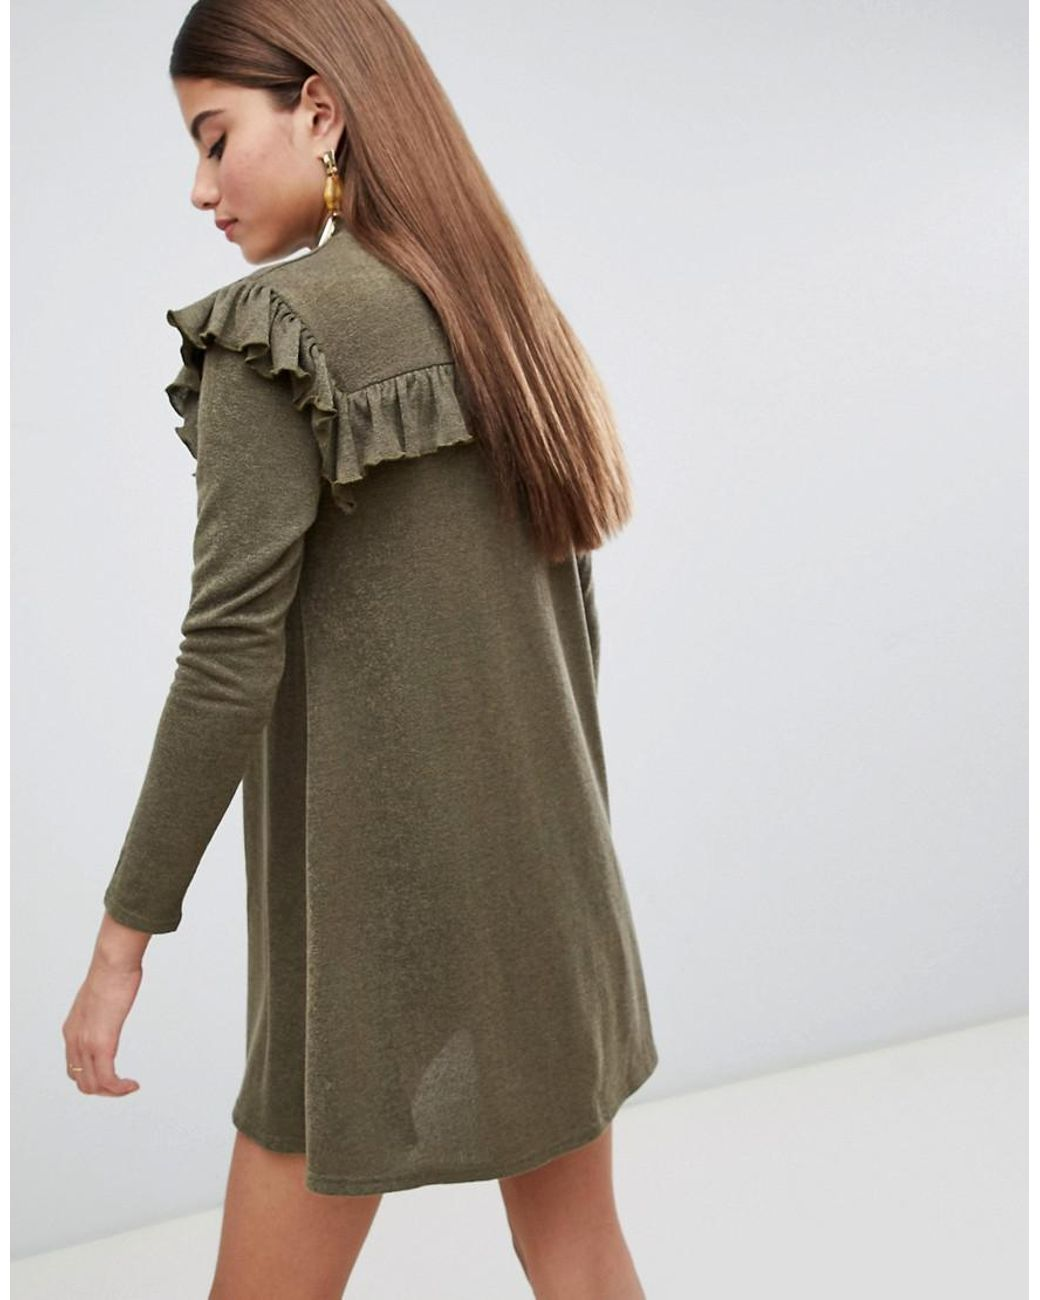 849504559e7 AX Paris Long Sleeve Sweater Dress With Frill Detail in Green - Lyst